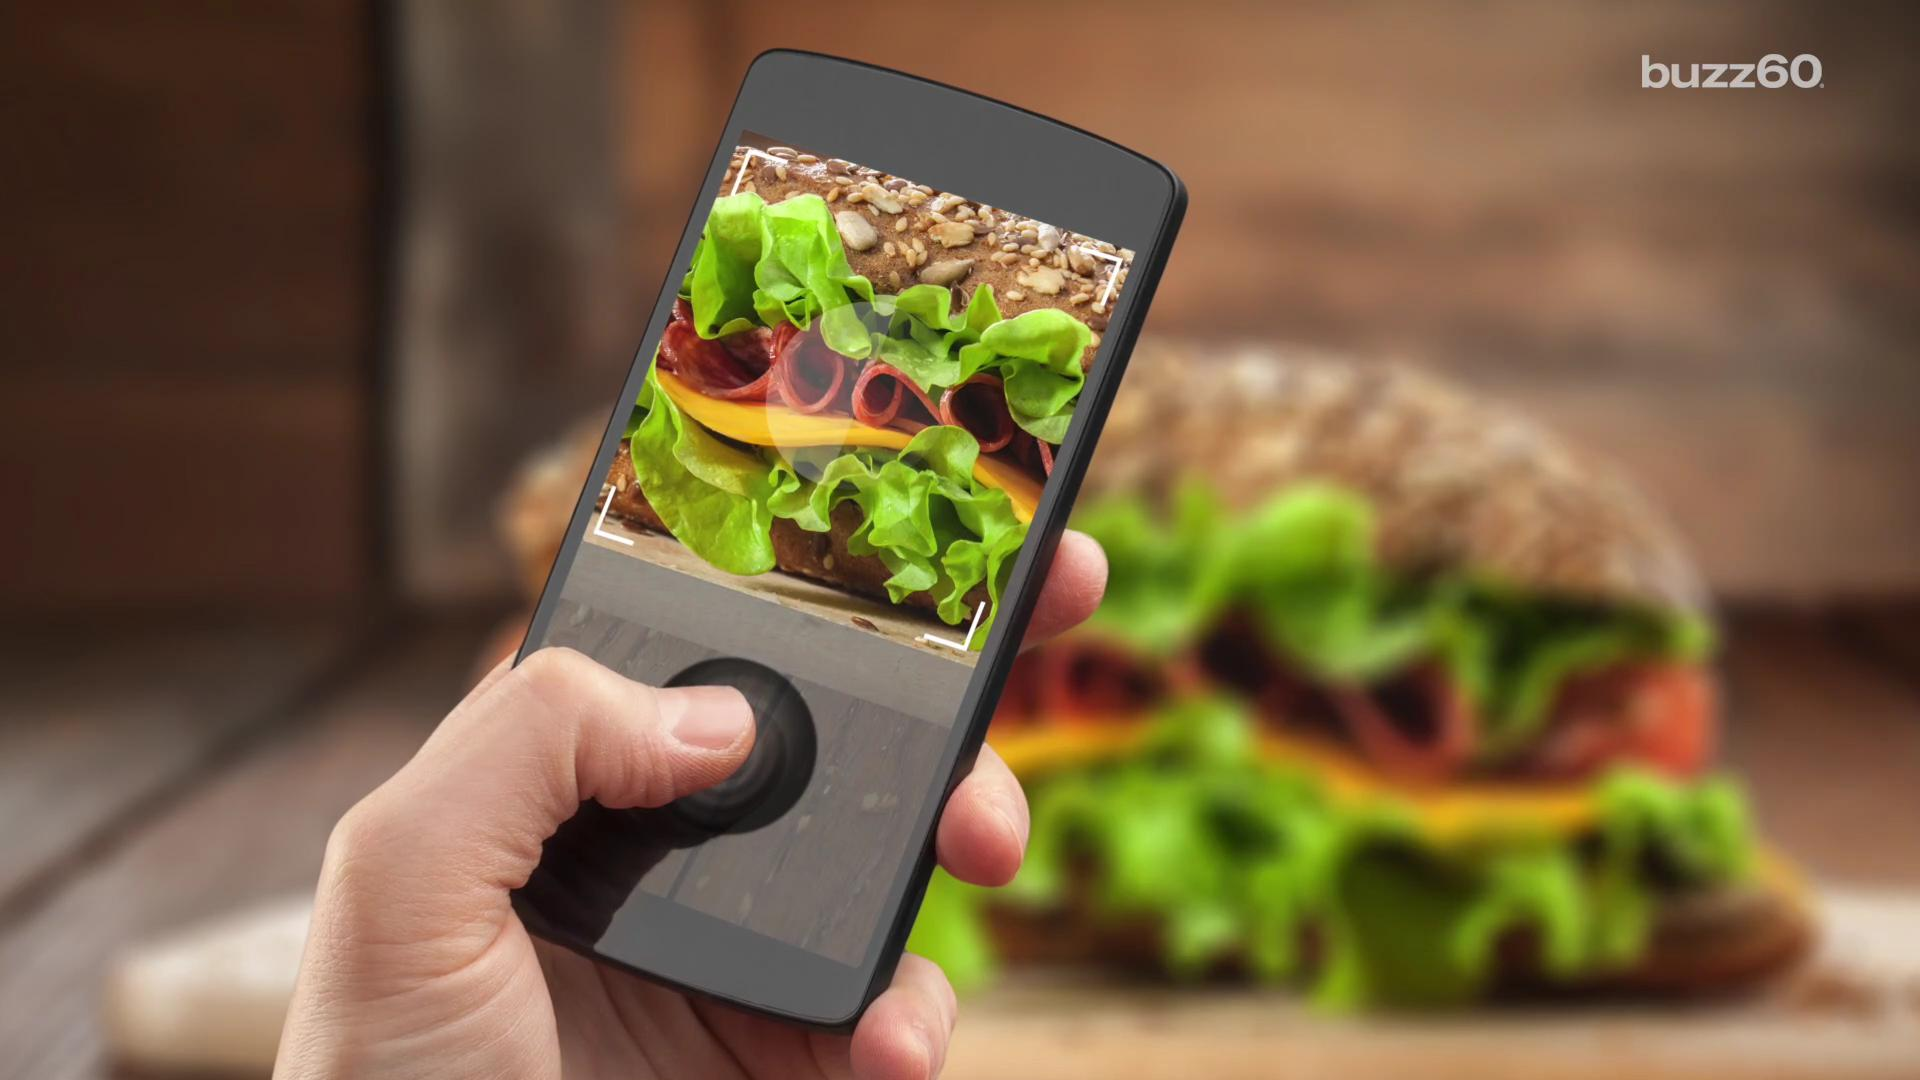 Instagramming Food Might Actually Make It Taste Better